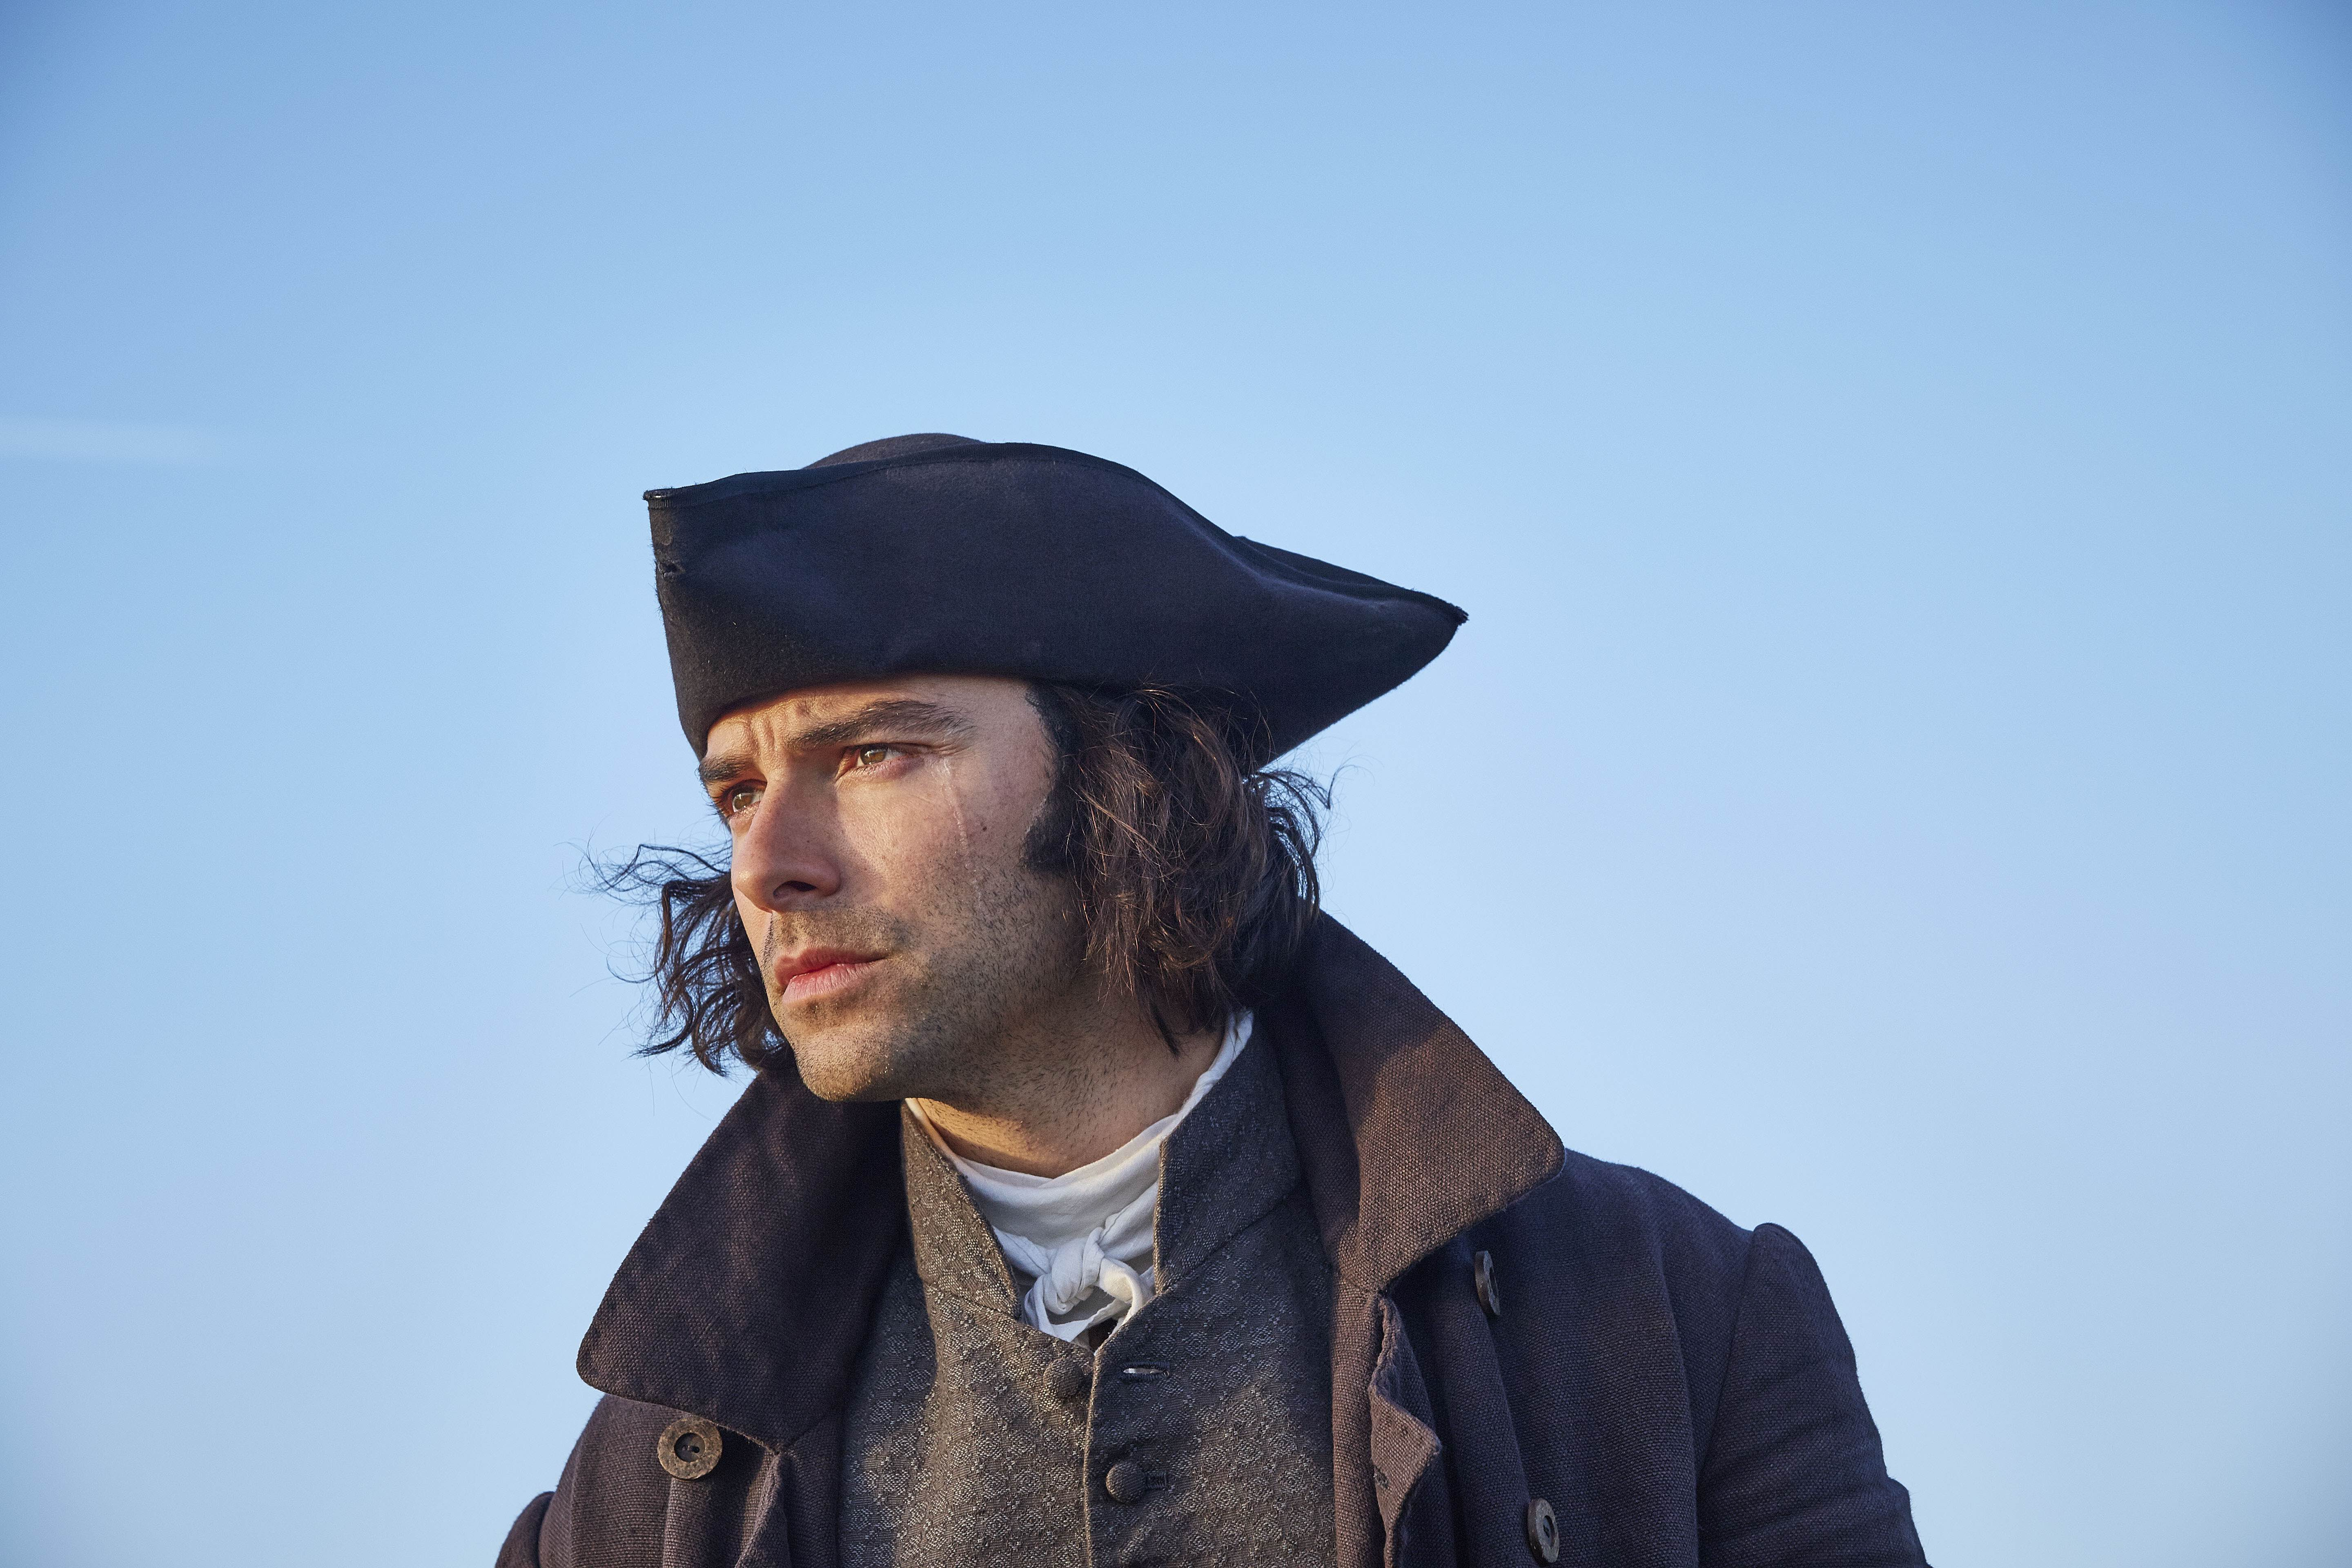 76479812a Season 5 of 'Poldark' Will Feature Aidan Turner's Ross as a British Spy